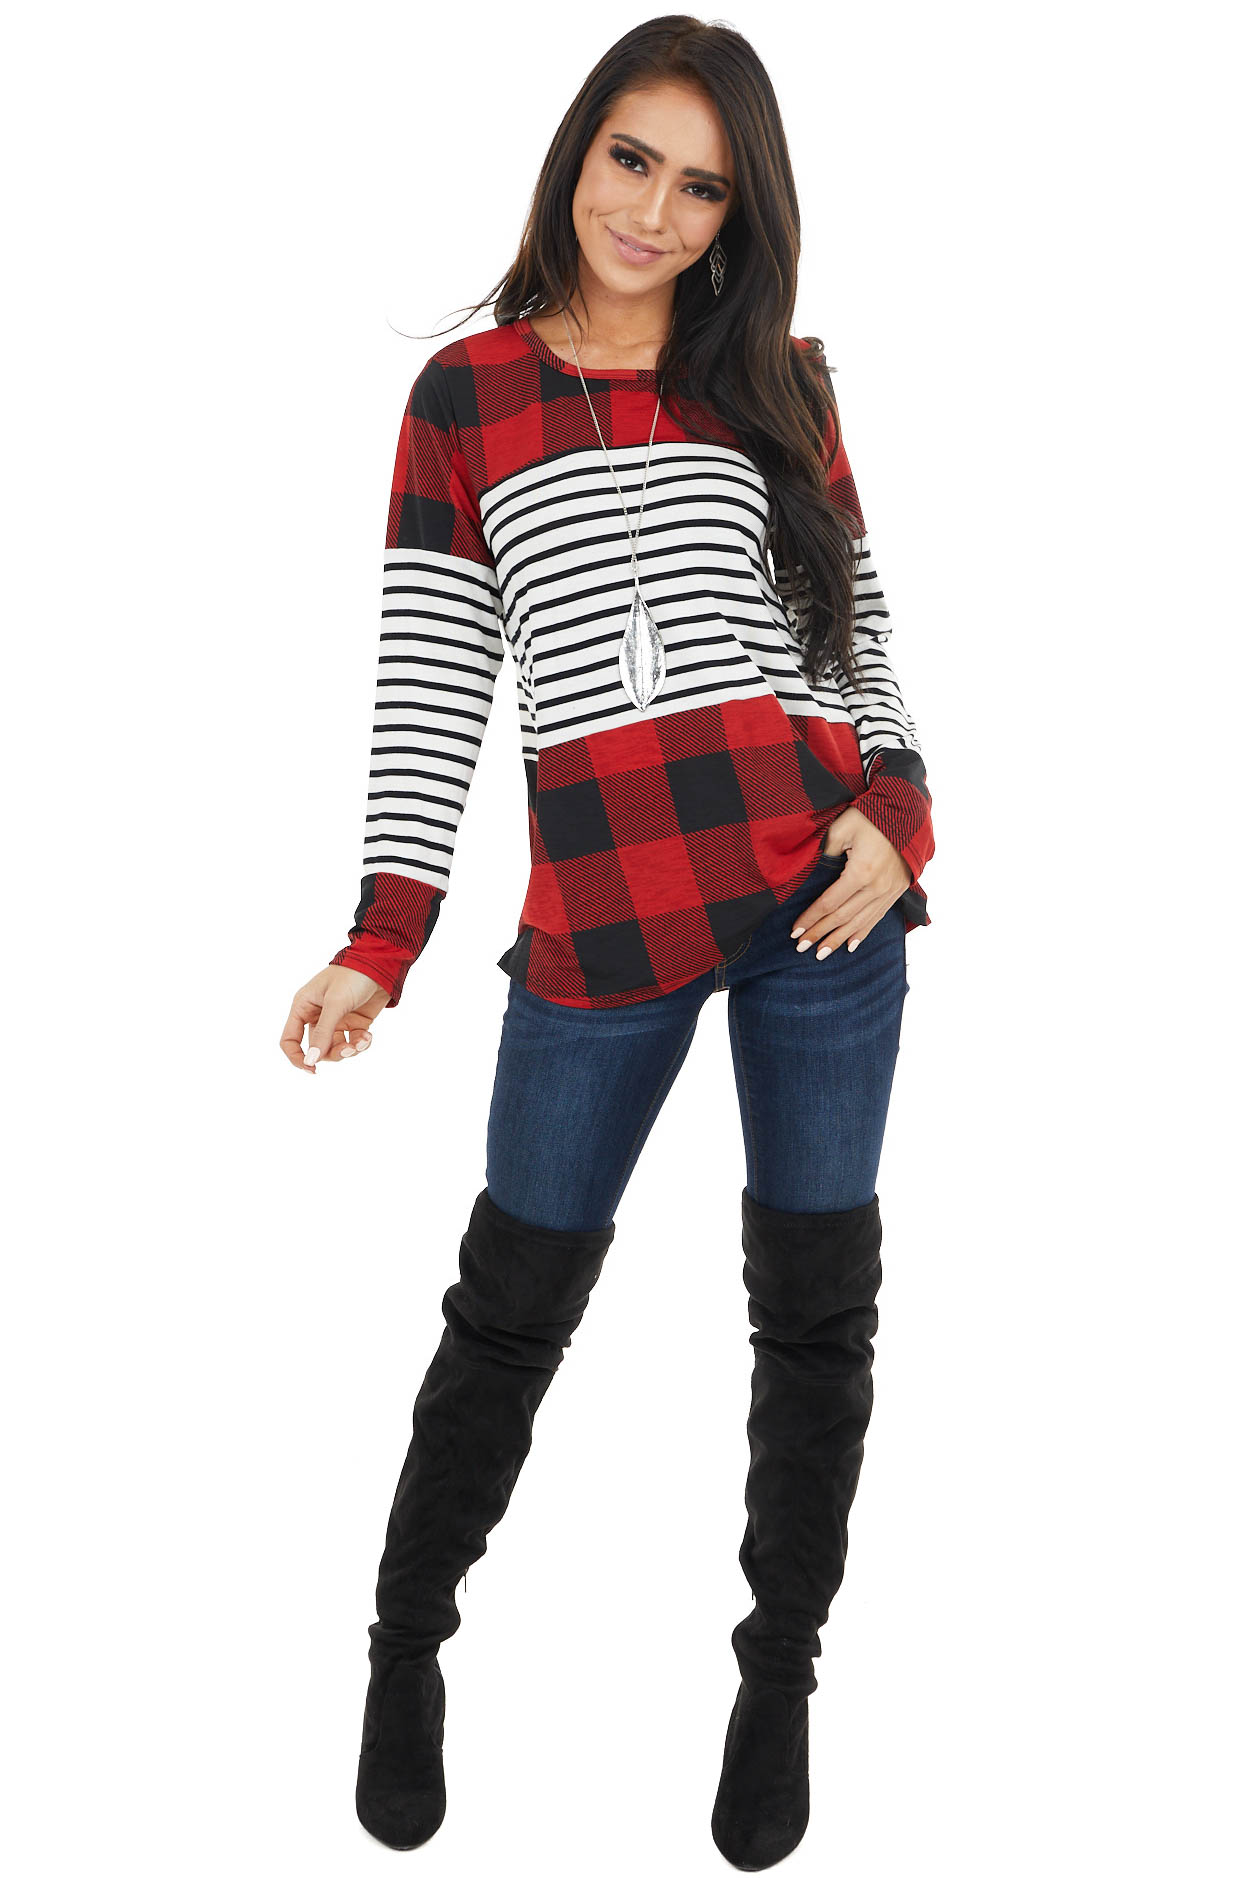 Cherry and Black Buffalo Plaid and Striped Long Sleeve Top